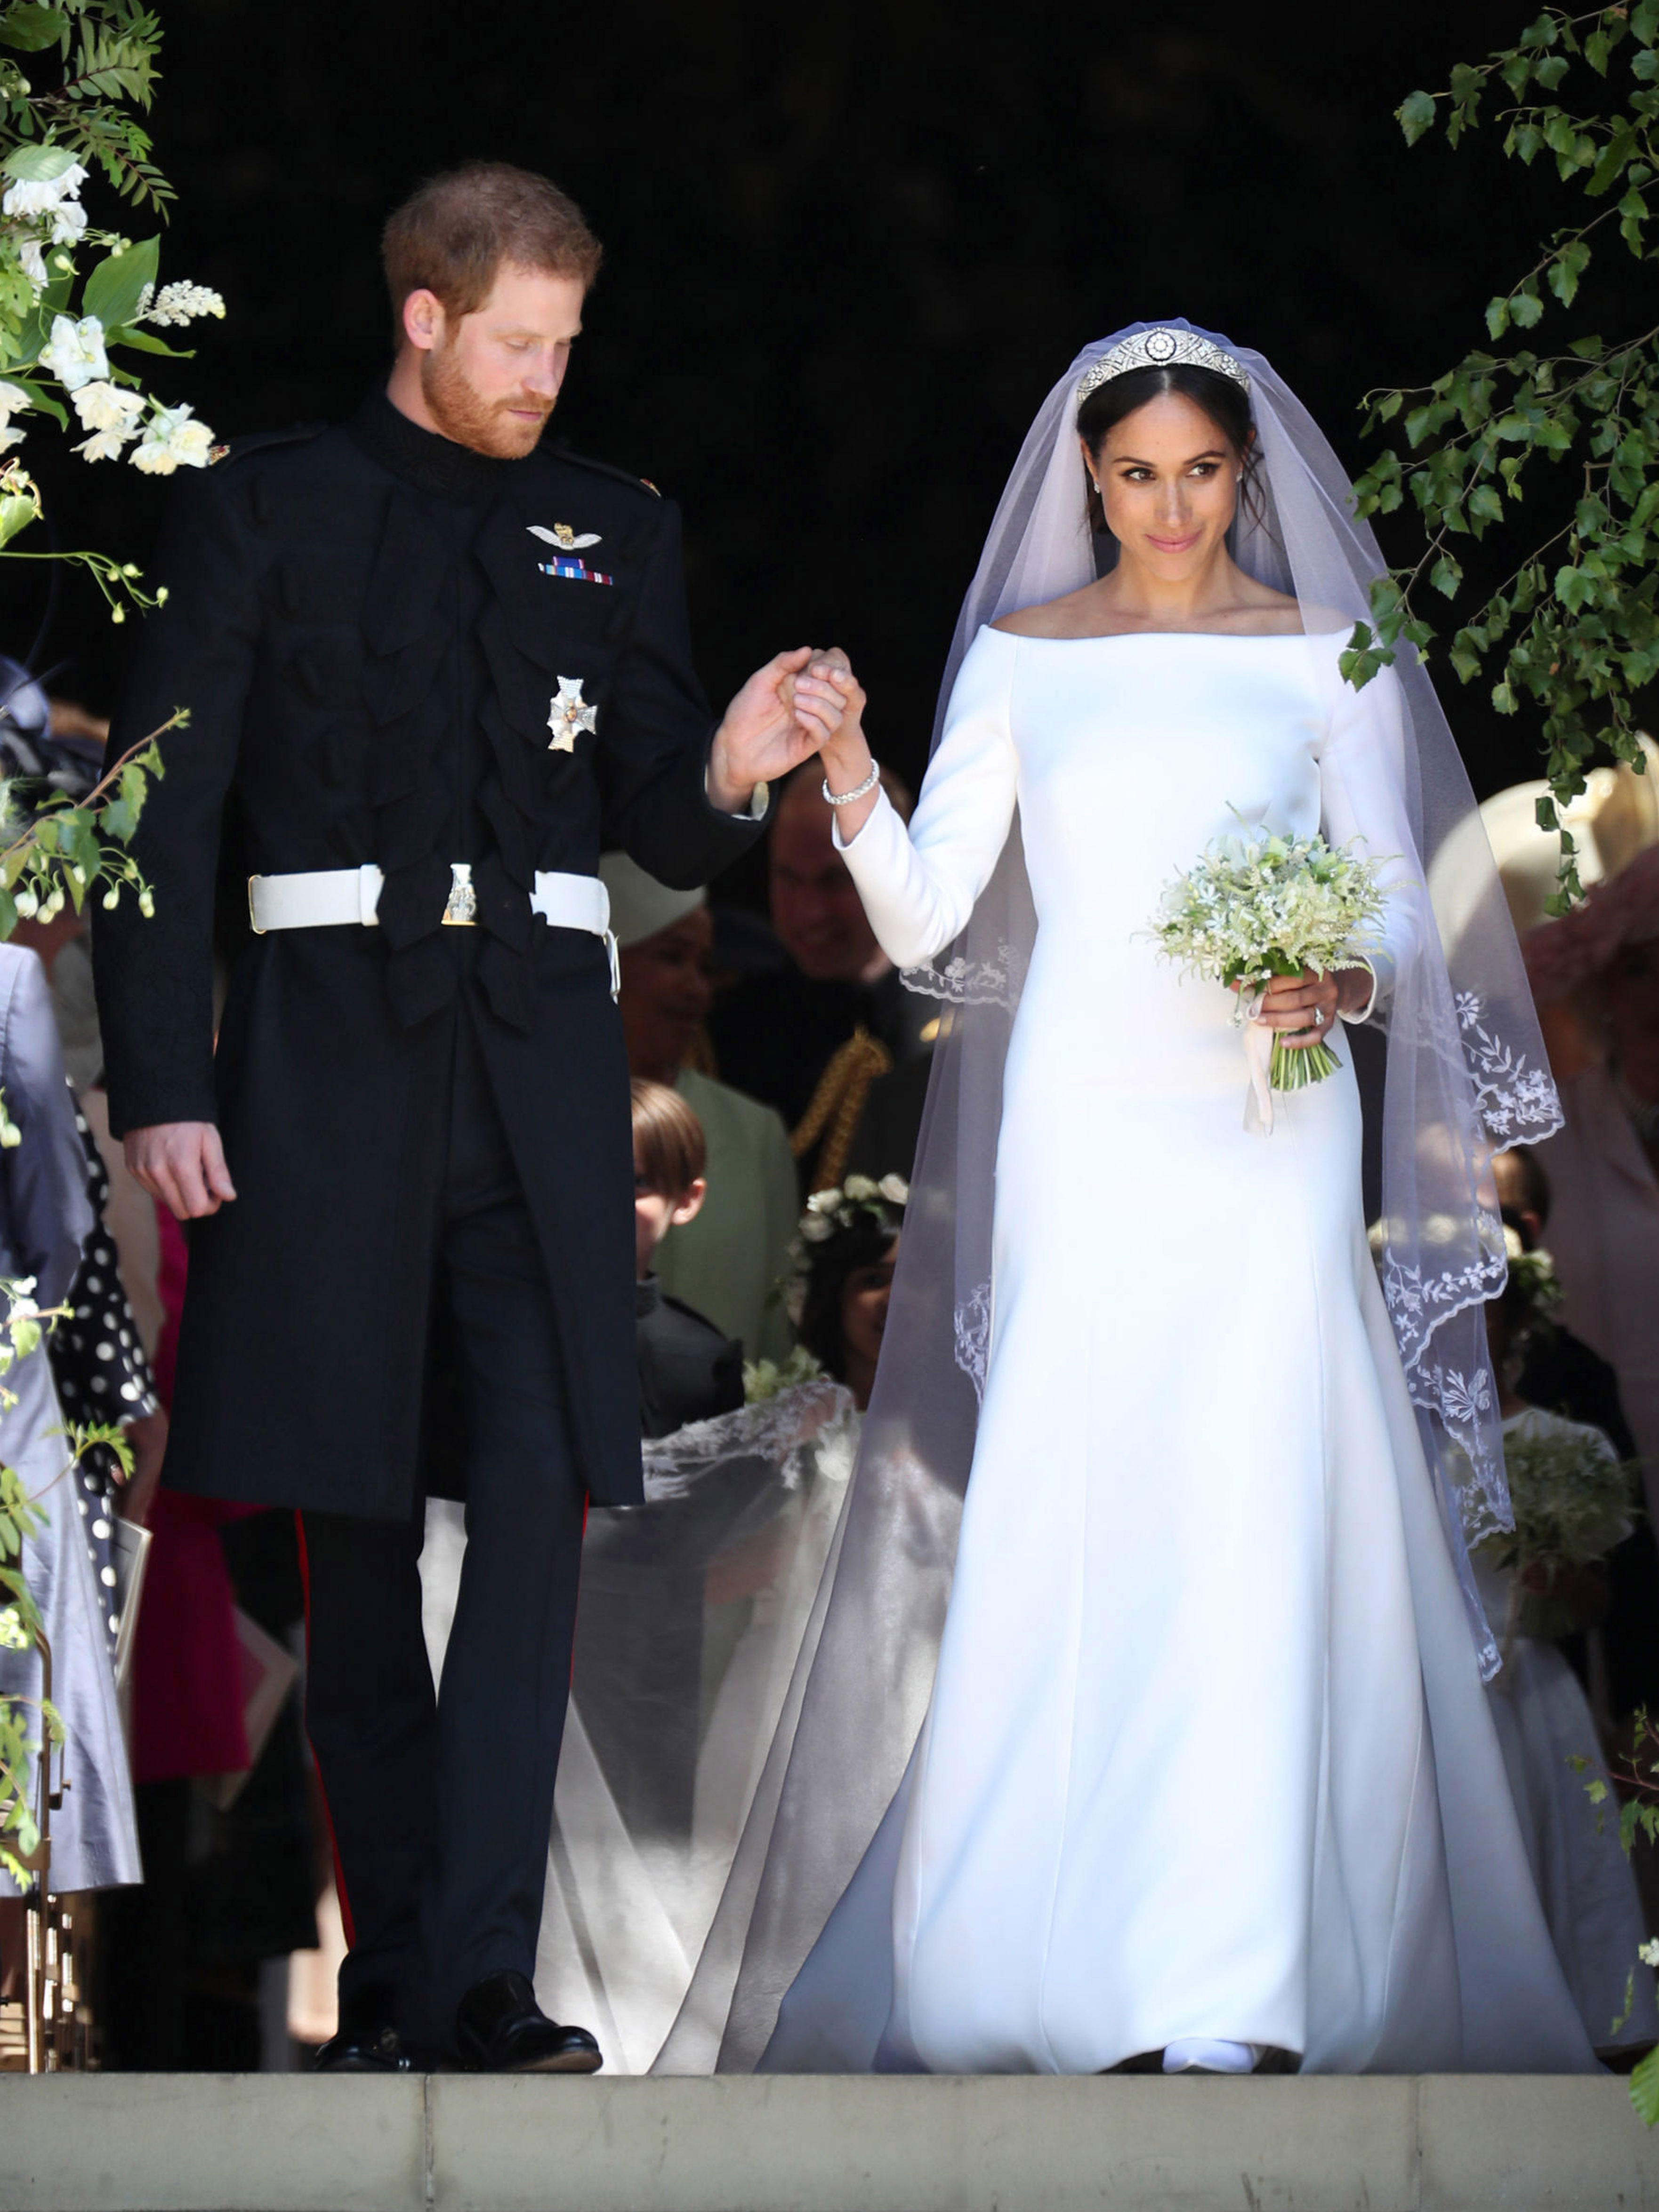 Best Celebrity Wedding Dresses: From Meghan Markle To Jackie